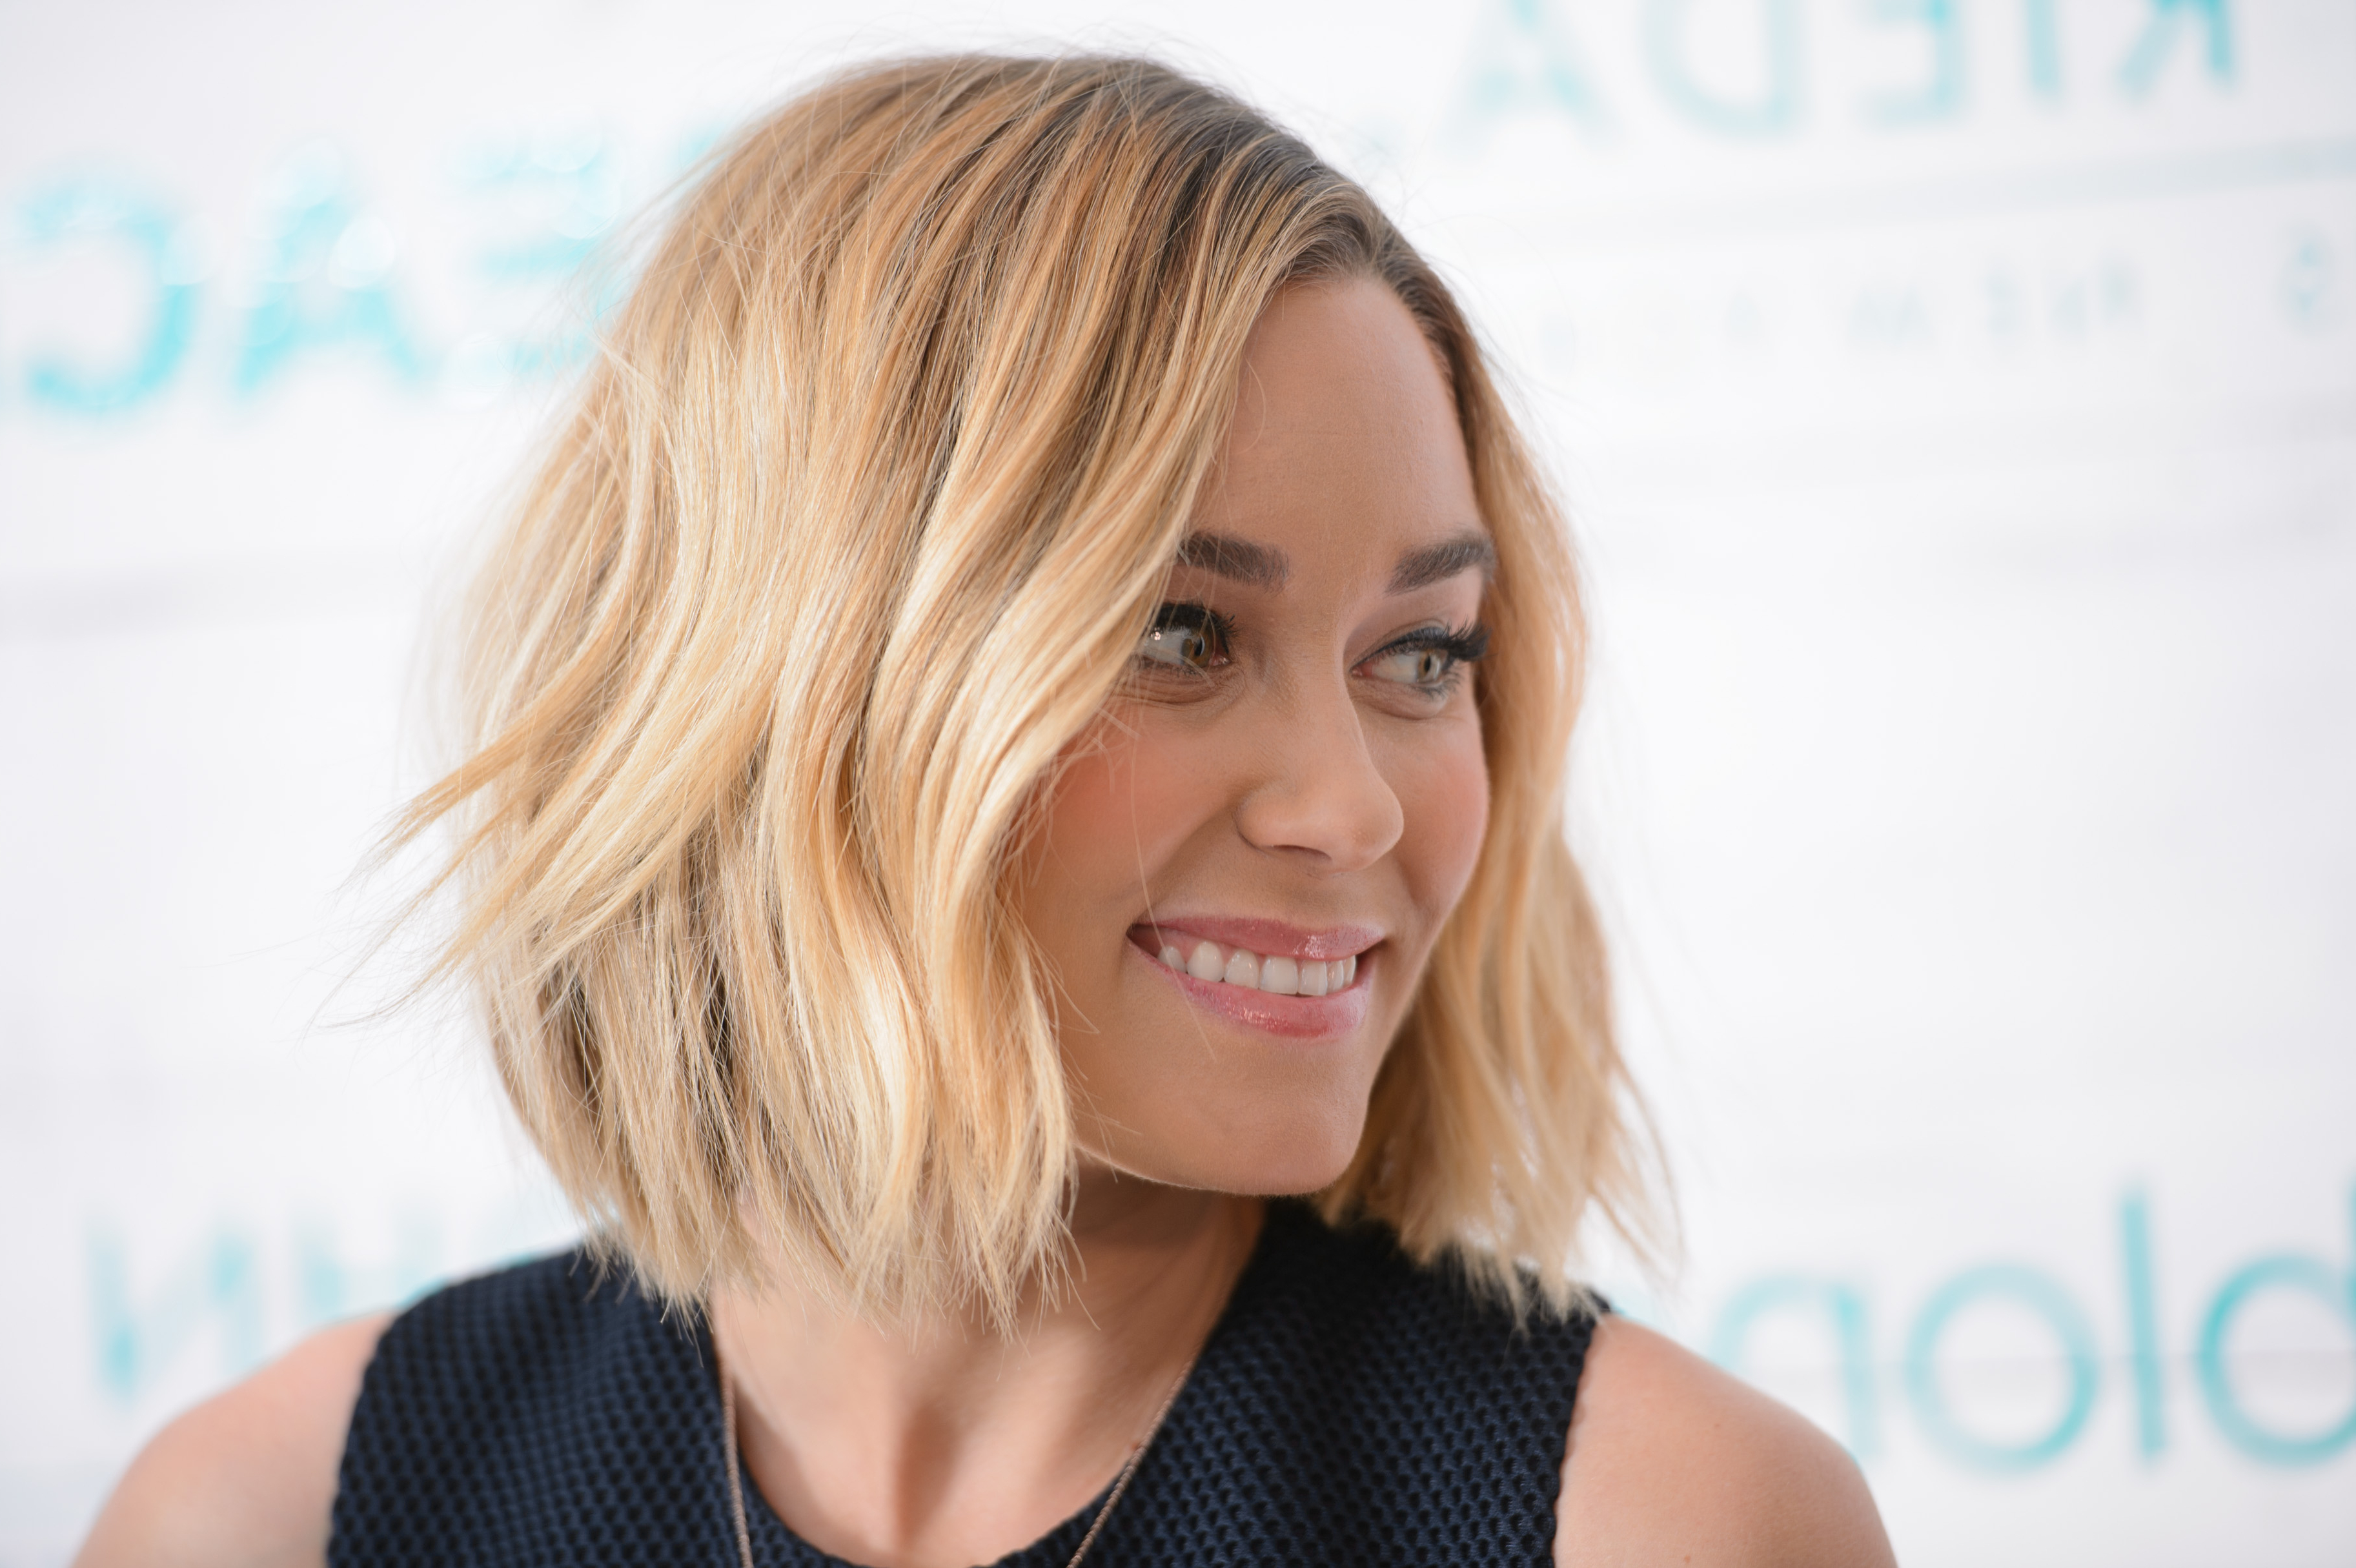 Get Lauren Conrad's Beachy Waves In 3 Easy Steps, Ocean & Sand Not Pertaining To Lauren Conrad Short Haircuts (View 9 of 25)